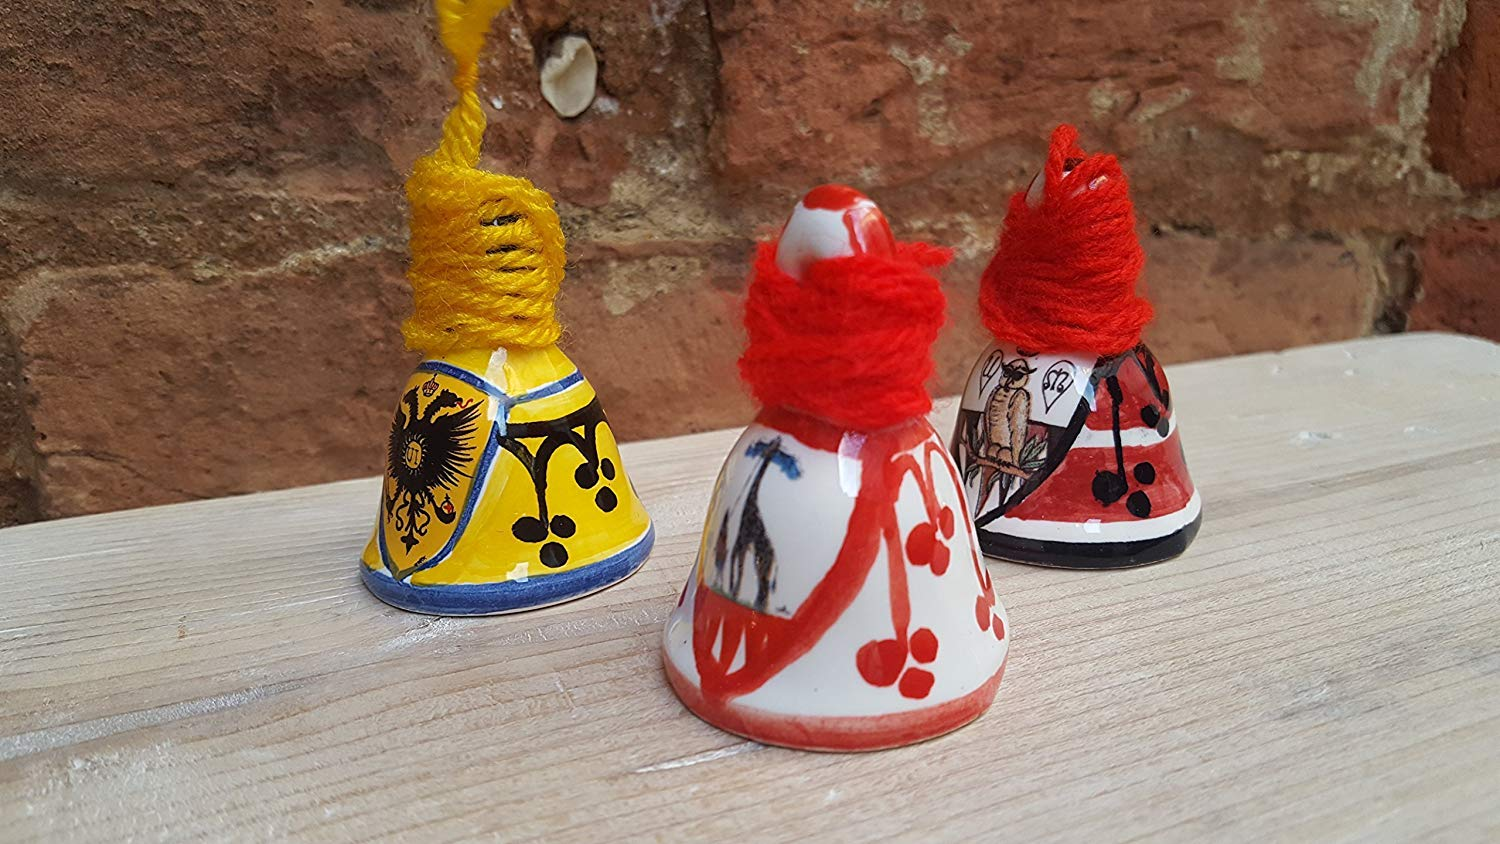 Bell of the districts of the Palio di Siena. Typical of the Sienese tradition, the feast of Saint Lucia. Size Mignon.